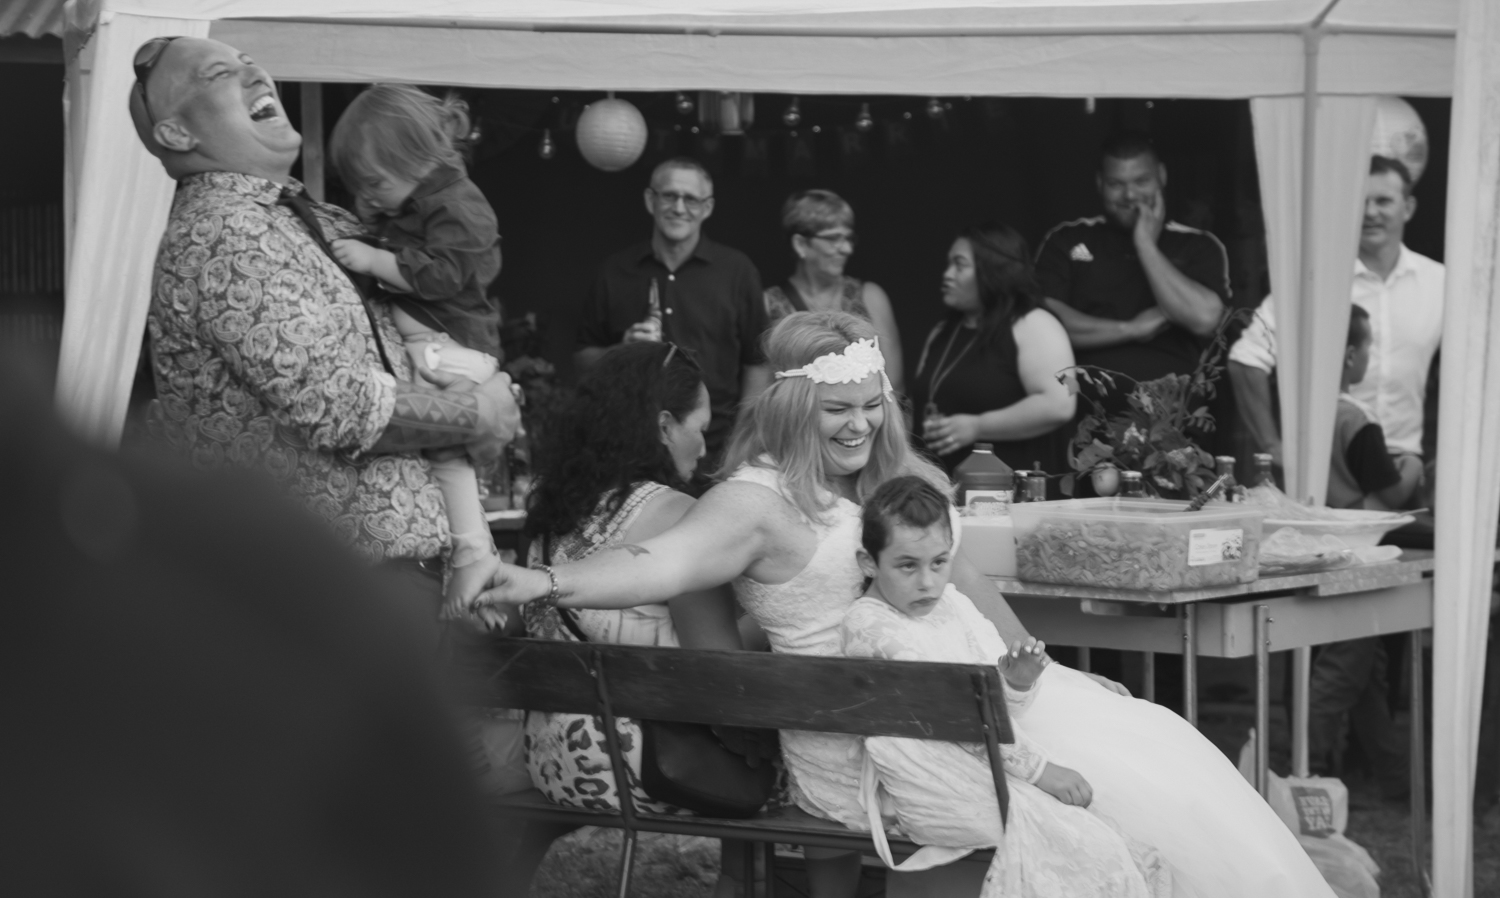 wedding-photography-black-and-white--bride-and-groom-lauhging-during-speeches.jpg